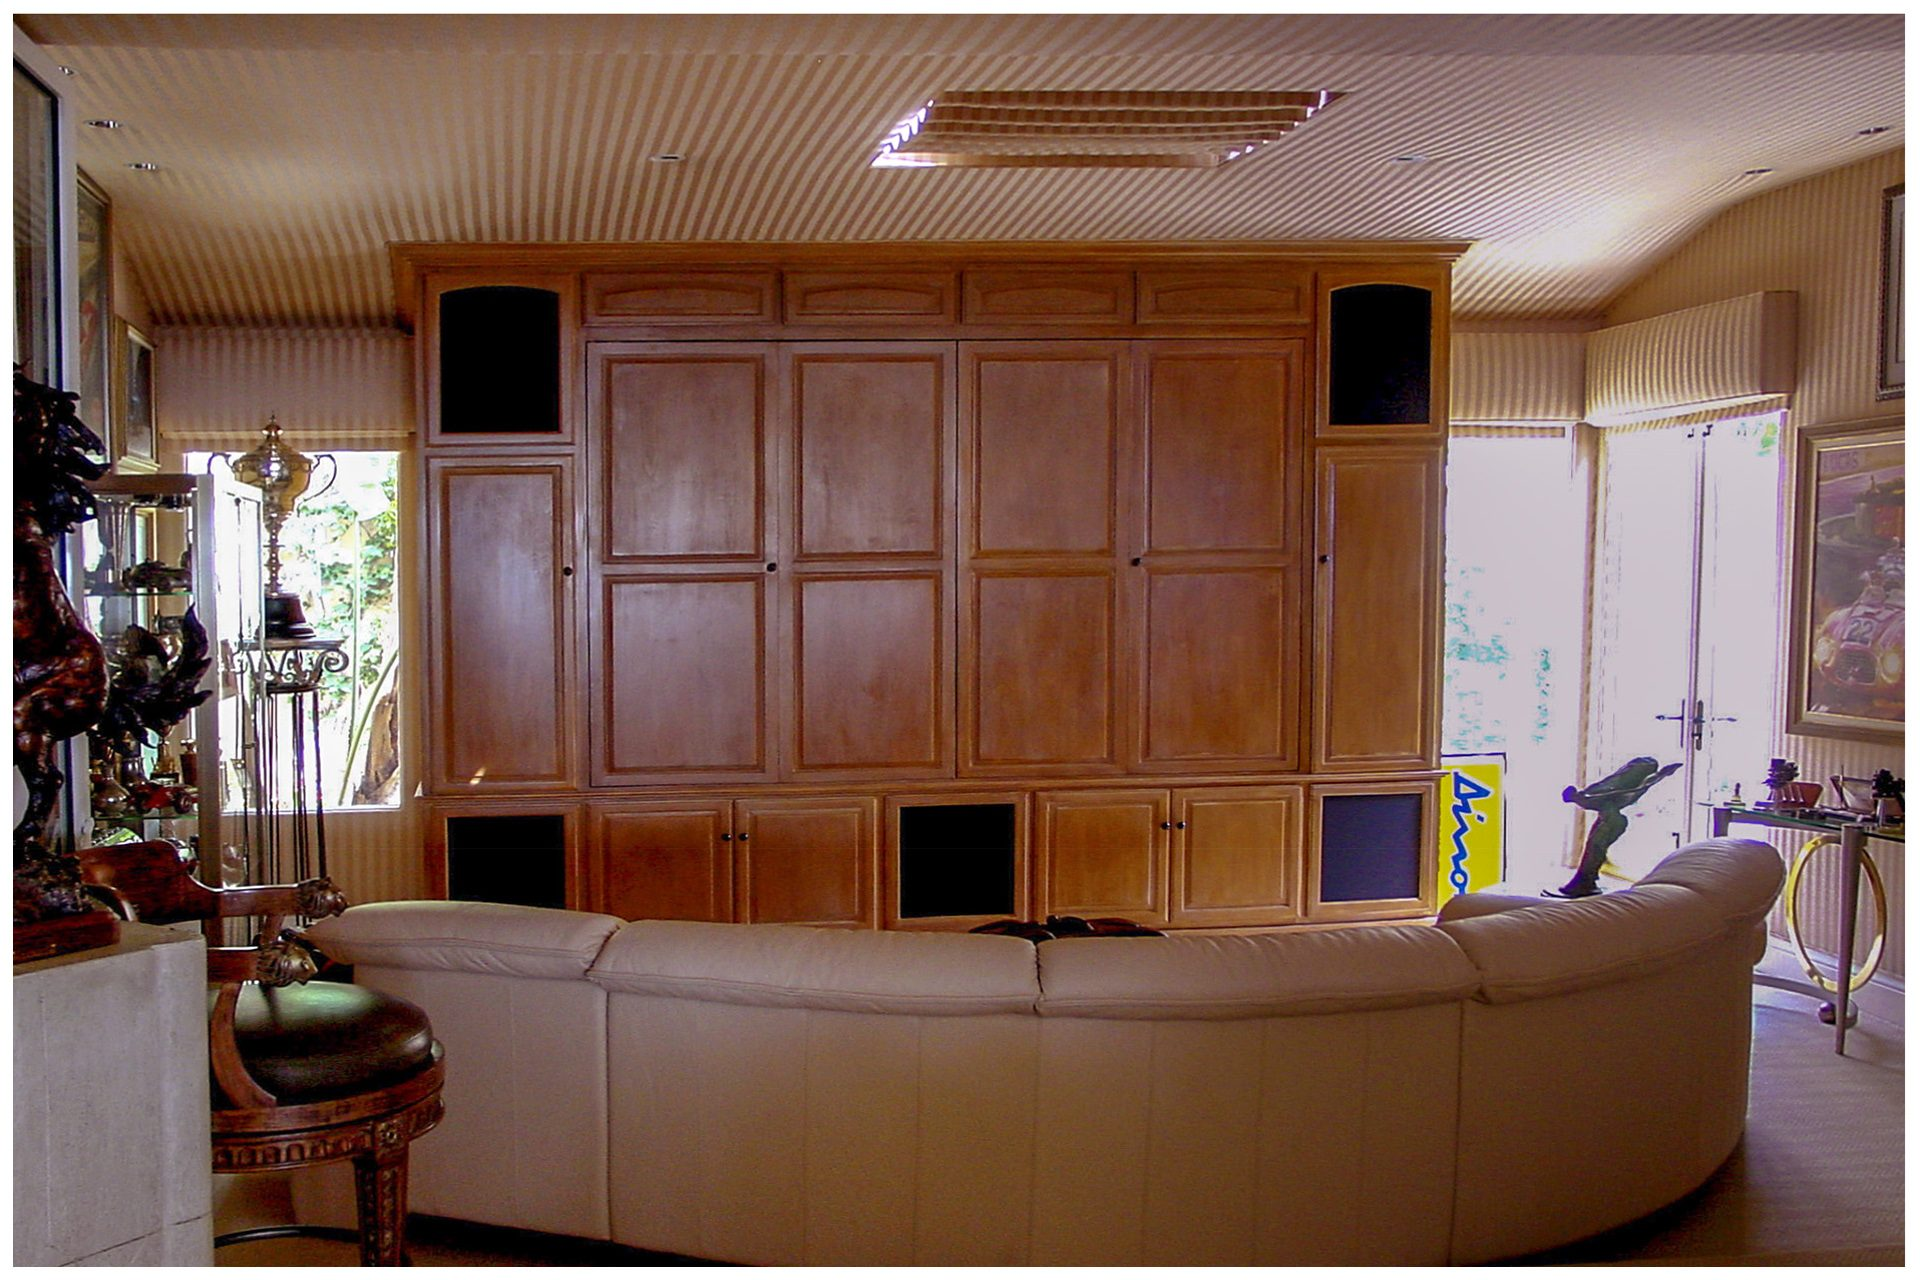 SMALL DEN THEATER All speaker elements were enclosed in the cabinet.  The projector was recessed into the ceiling.The cabinet was designed with space and wiring provisions to accommodate a future upgrade to a large LED screen behind a drop down screen for daytime viewing.